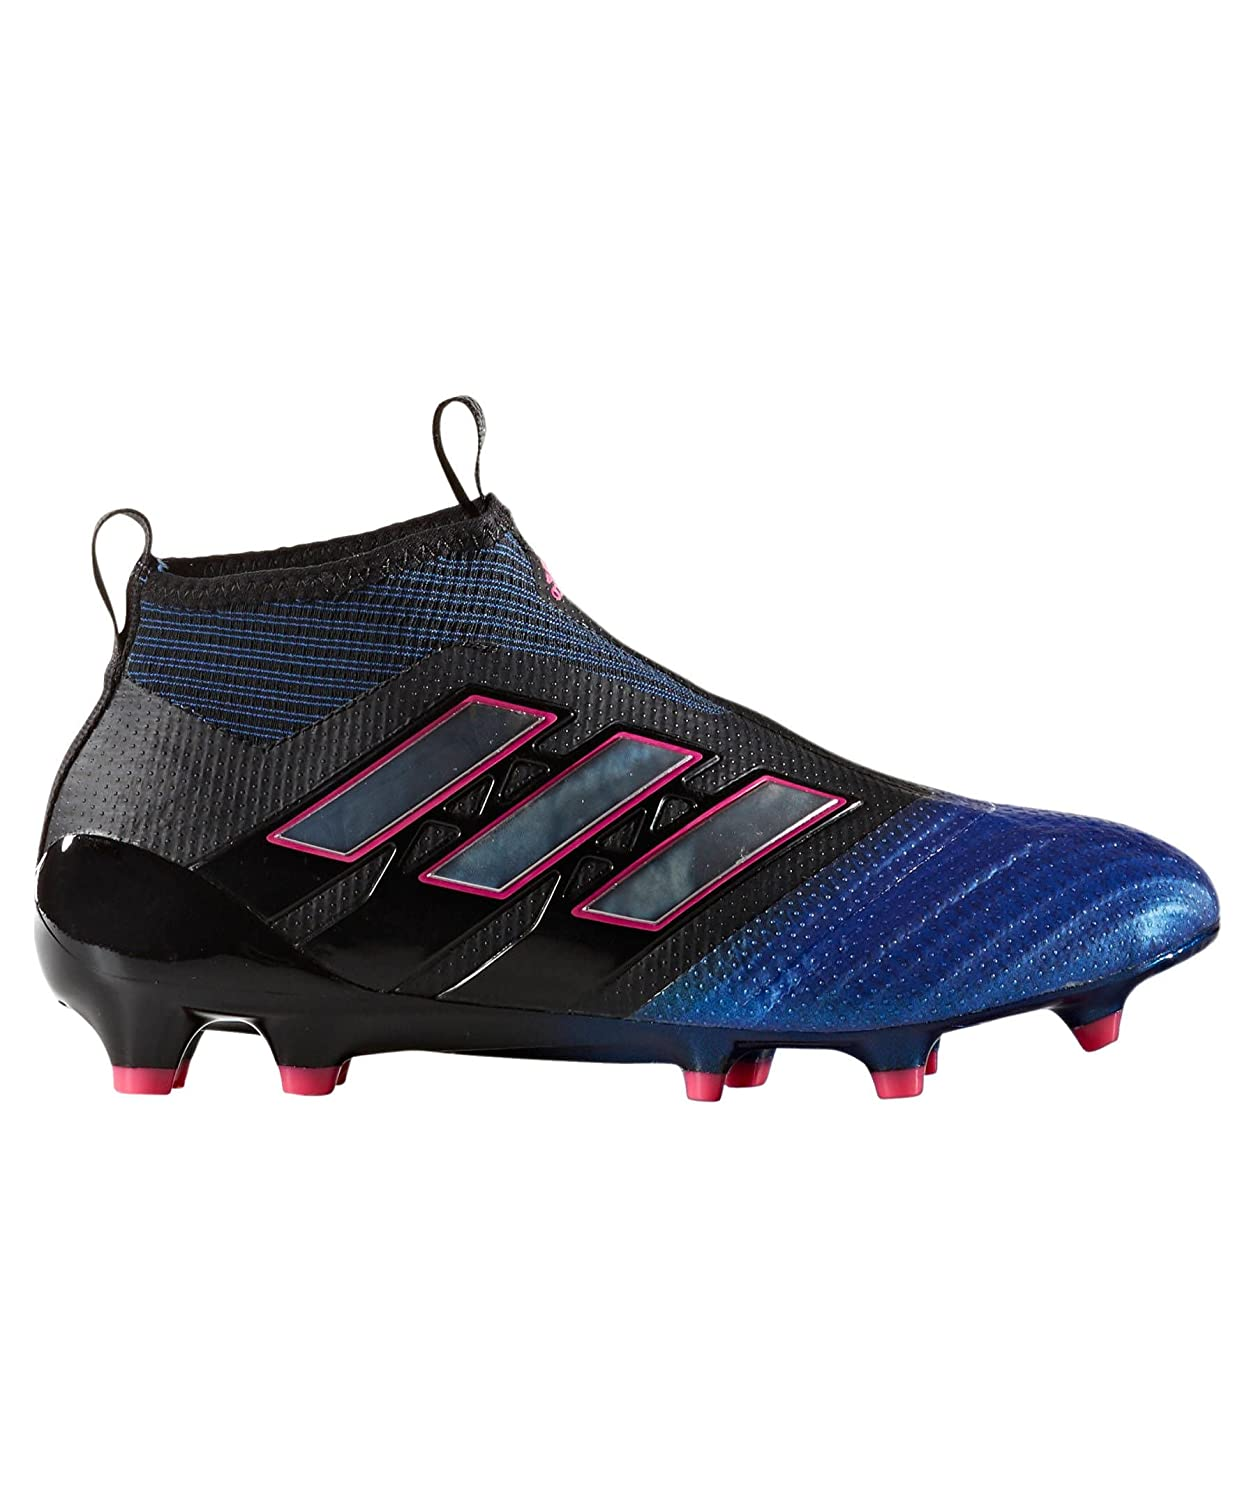 new arrival 2f5c4 4f939 adidas Unisex Kids' Ace 17+ Purecontrol Fg Football Boots